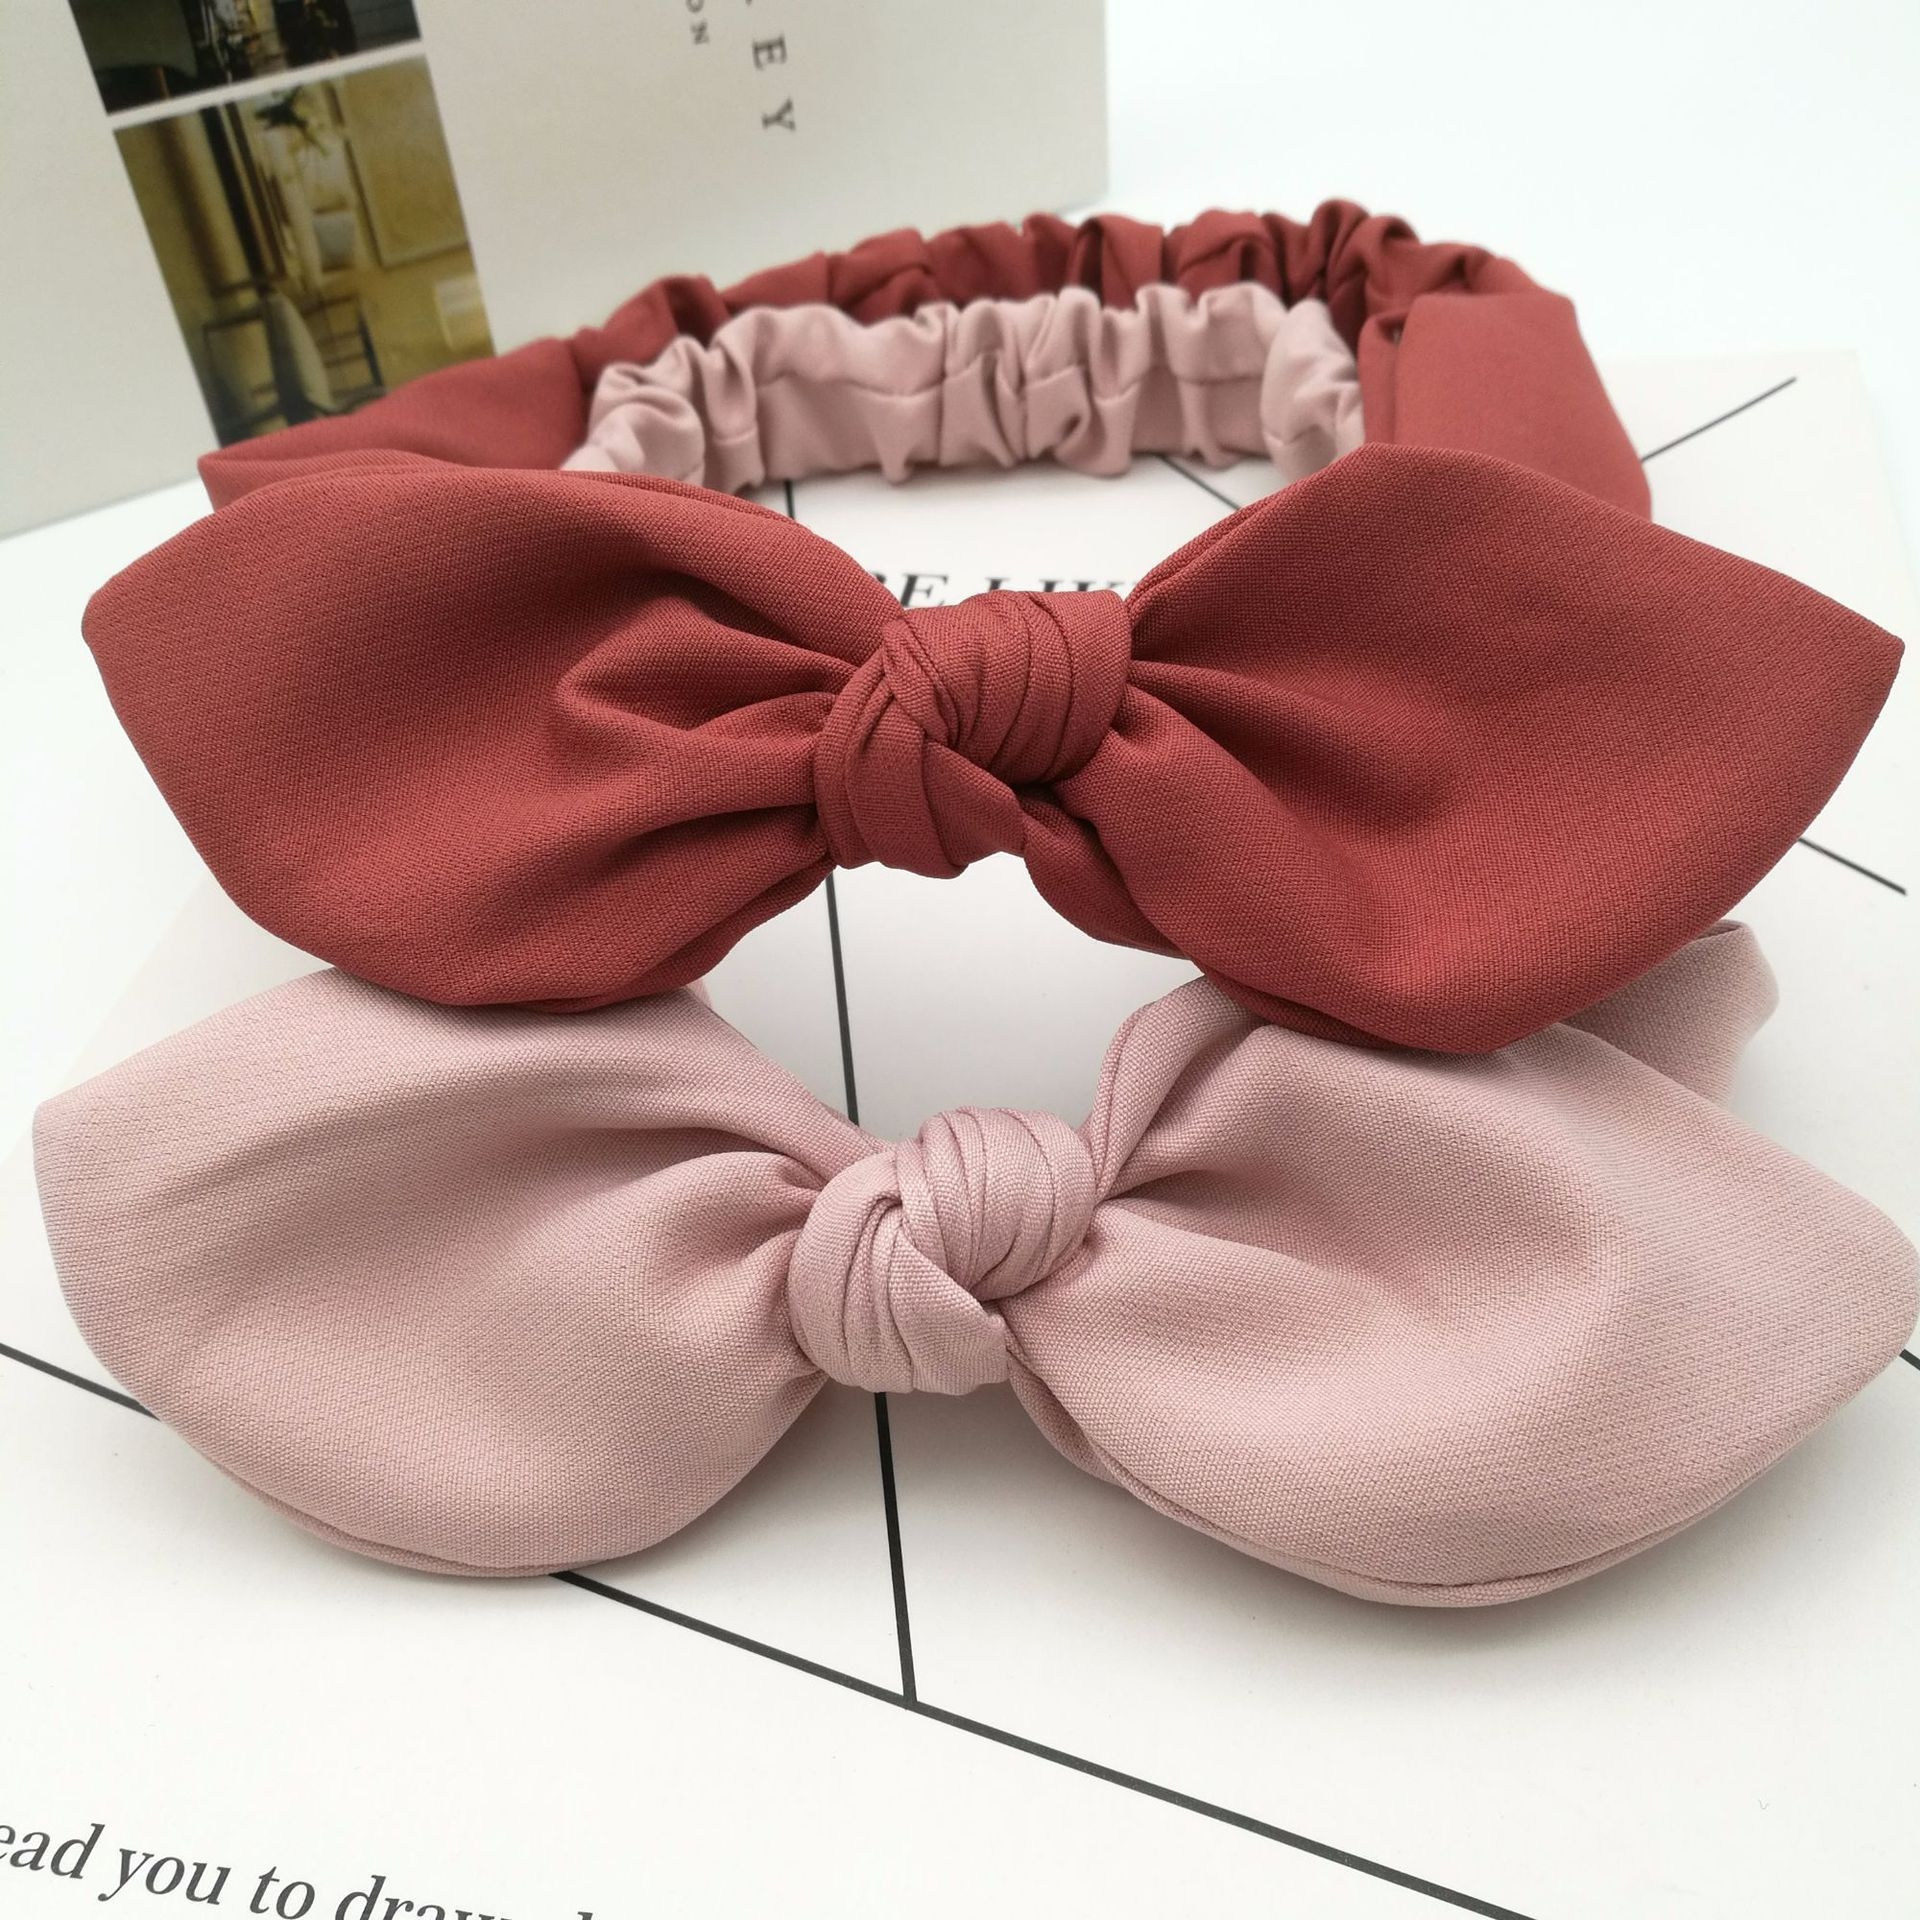 1PCS Solid Color Bunny Ears Headband Women Knotted Bow Hairband Female Stretch Rabbit Ear Hair Band Headdress Hair Accessories